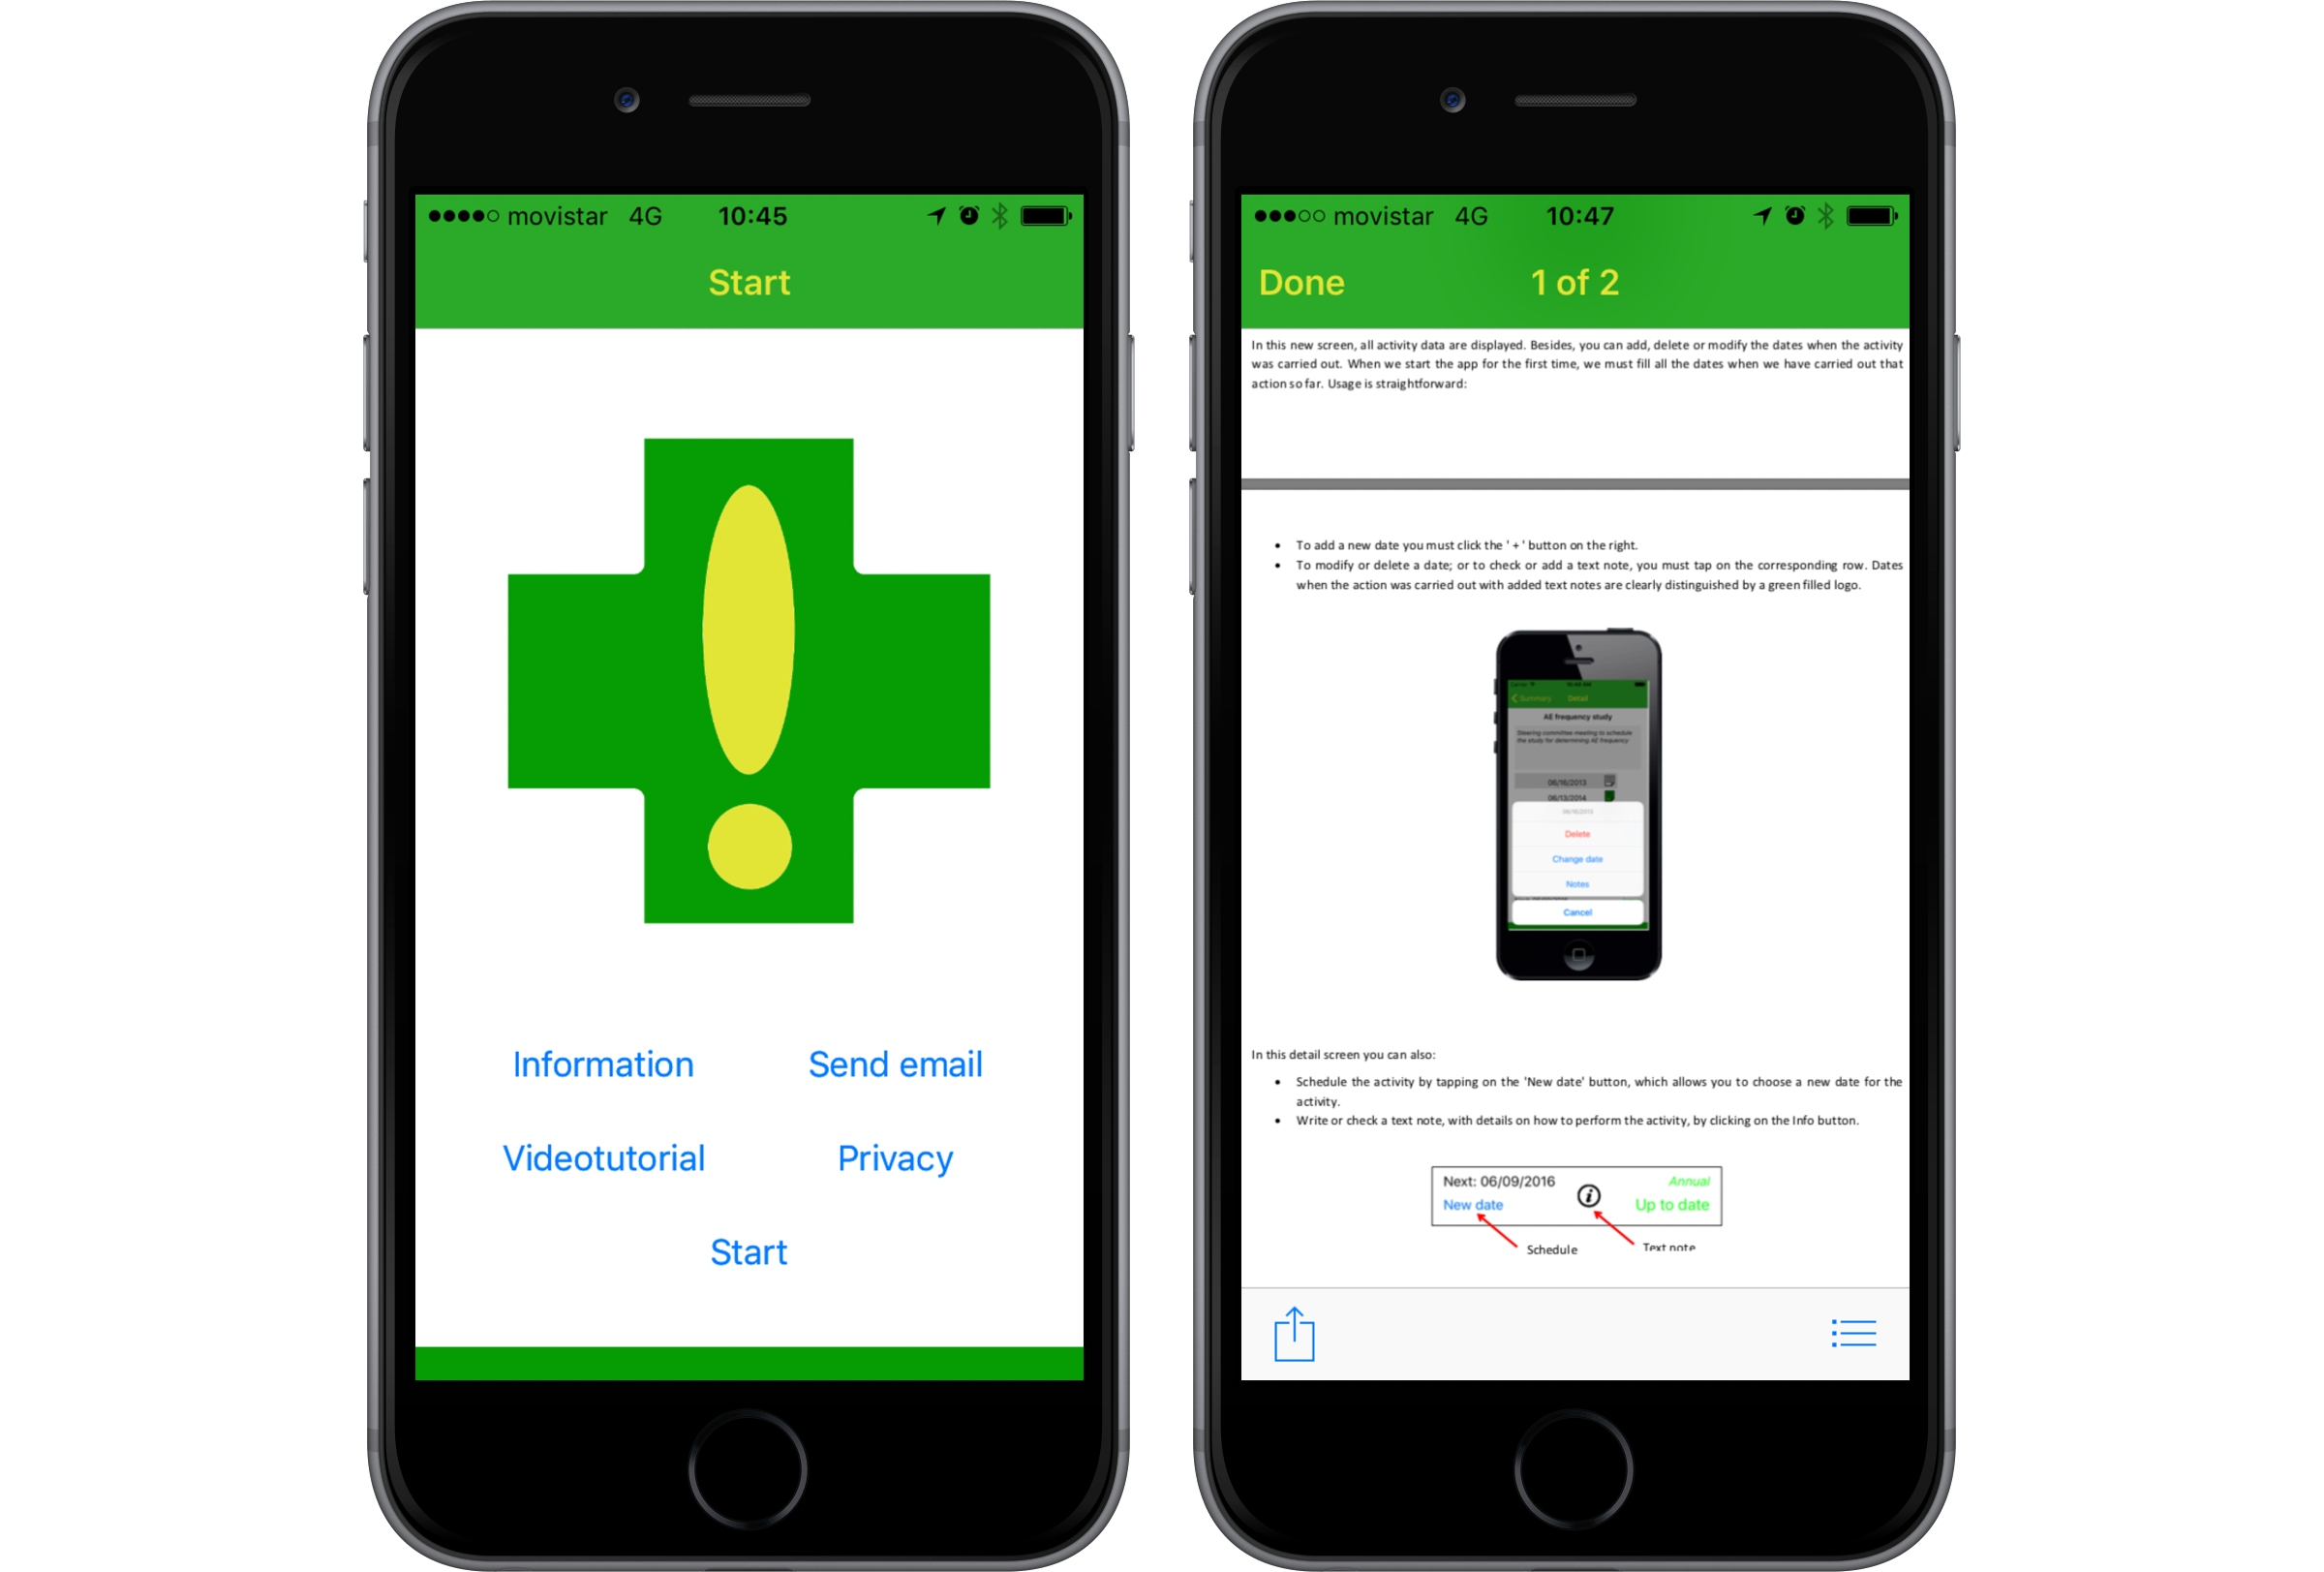 JMU - Design and Testing of the Safety Agenda Mobile App for